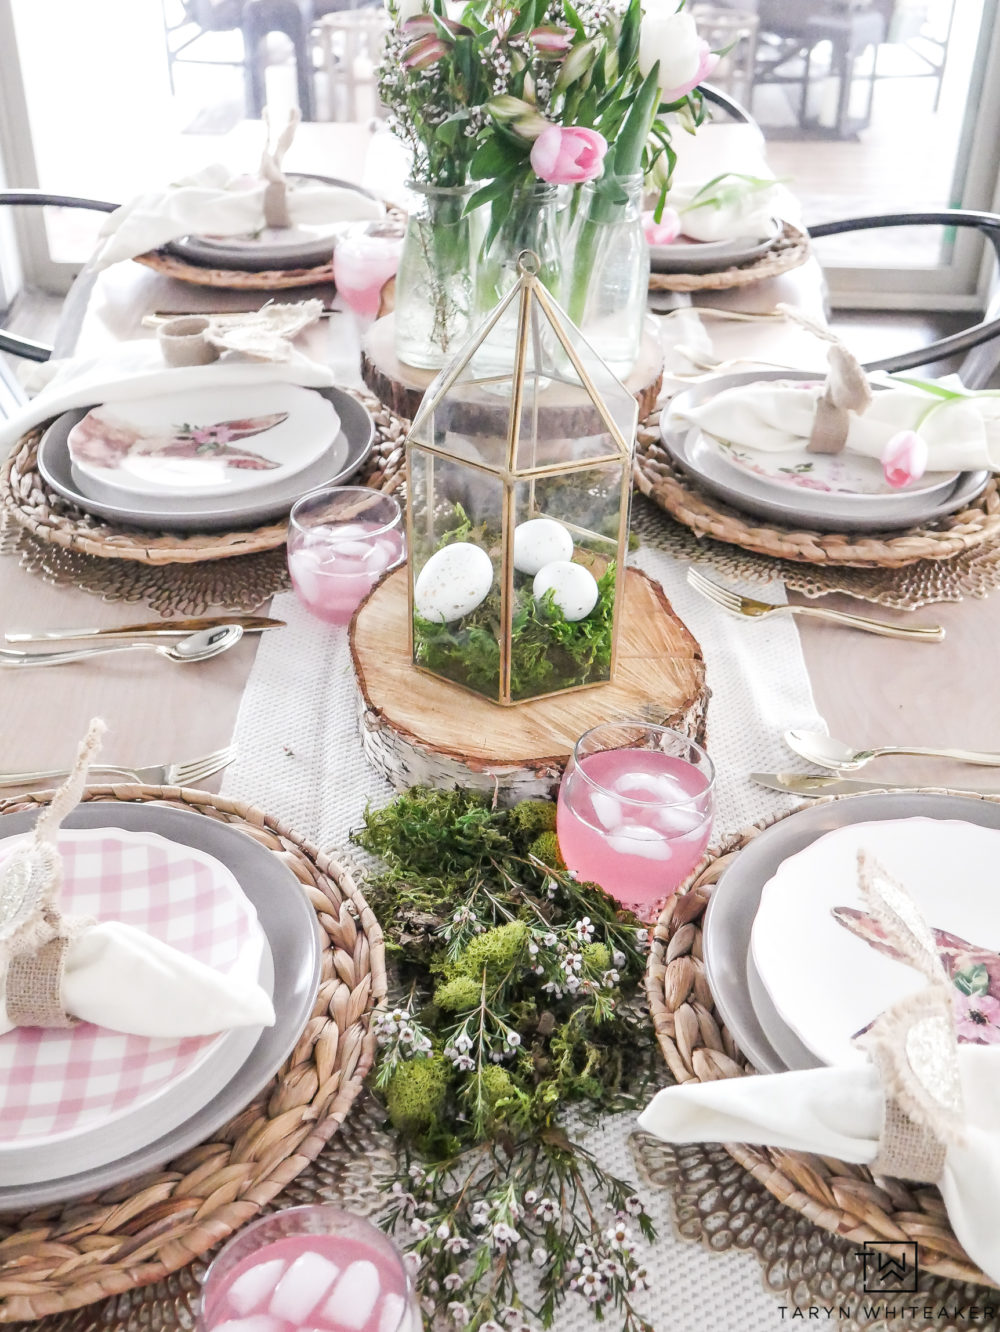 Simple and sweet Easter table decor with moss center piece and pretty pink plates! Those gold terrariums are so simple to put together too!